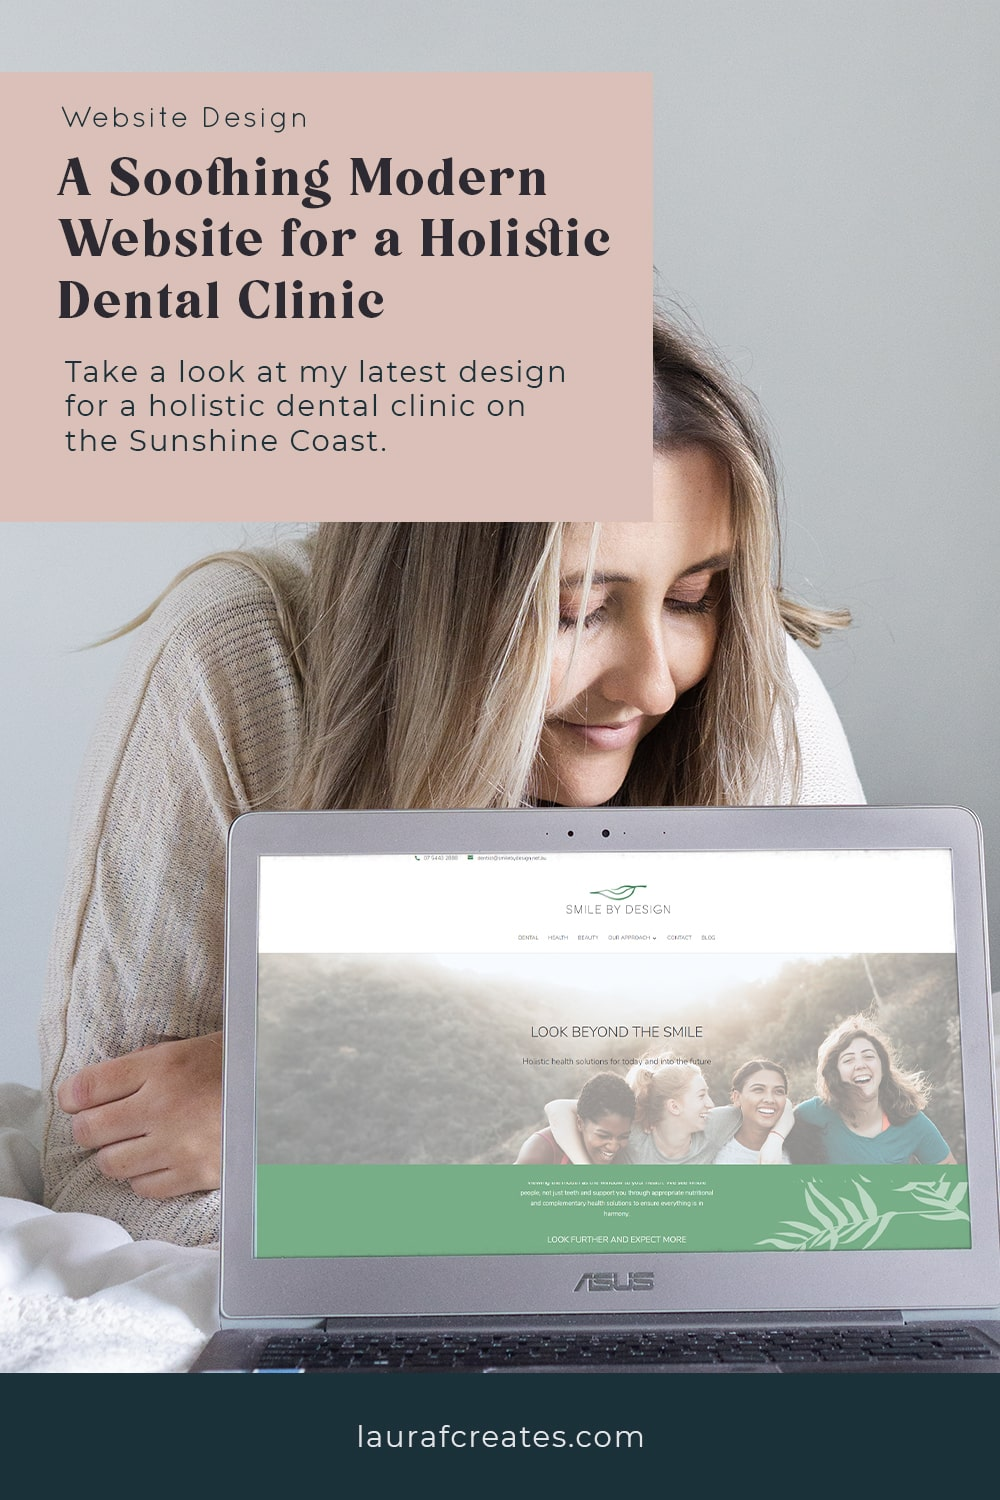 A Soothing Modern Website for a Holistic Dental Clinic